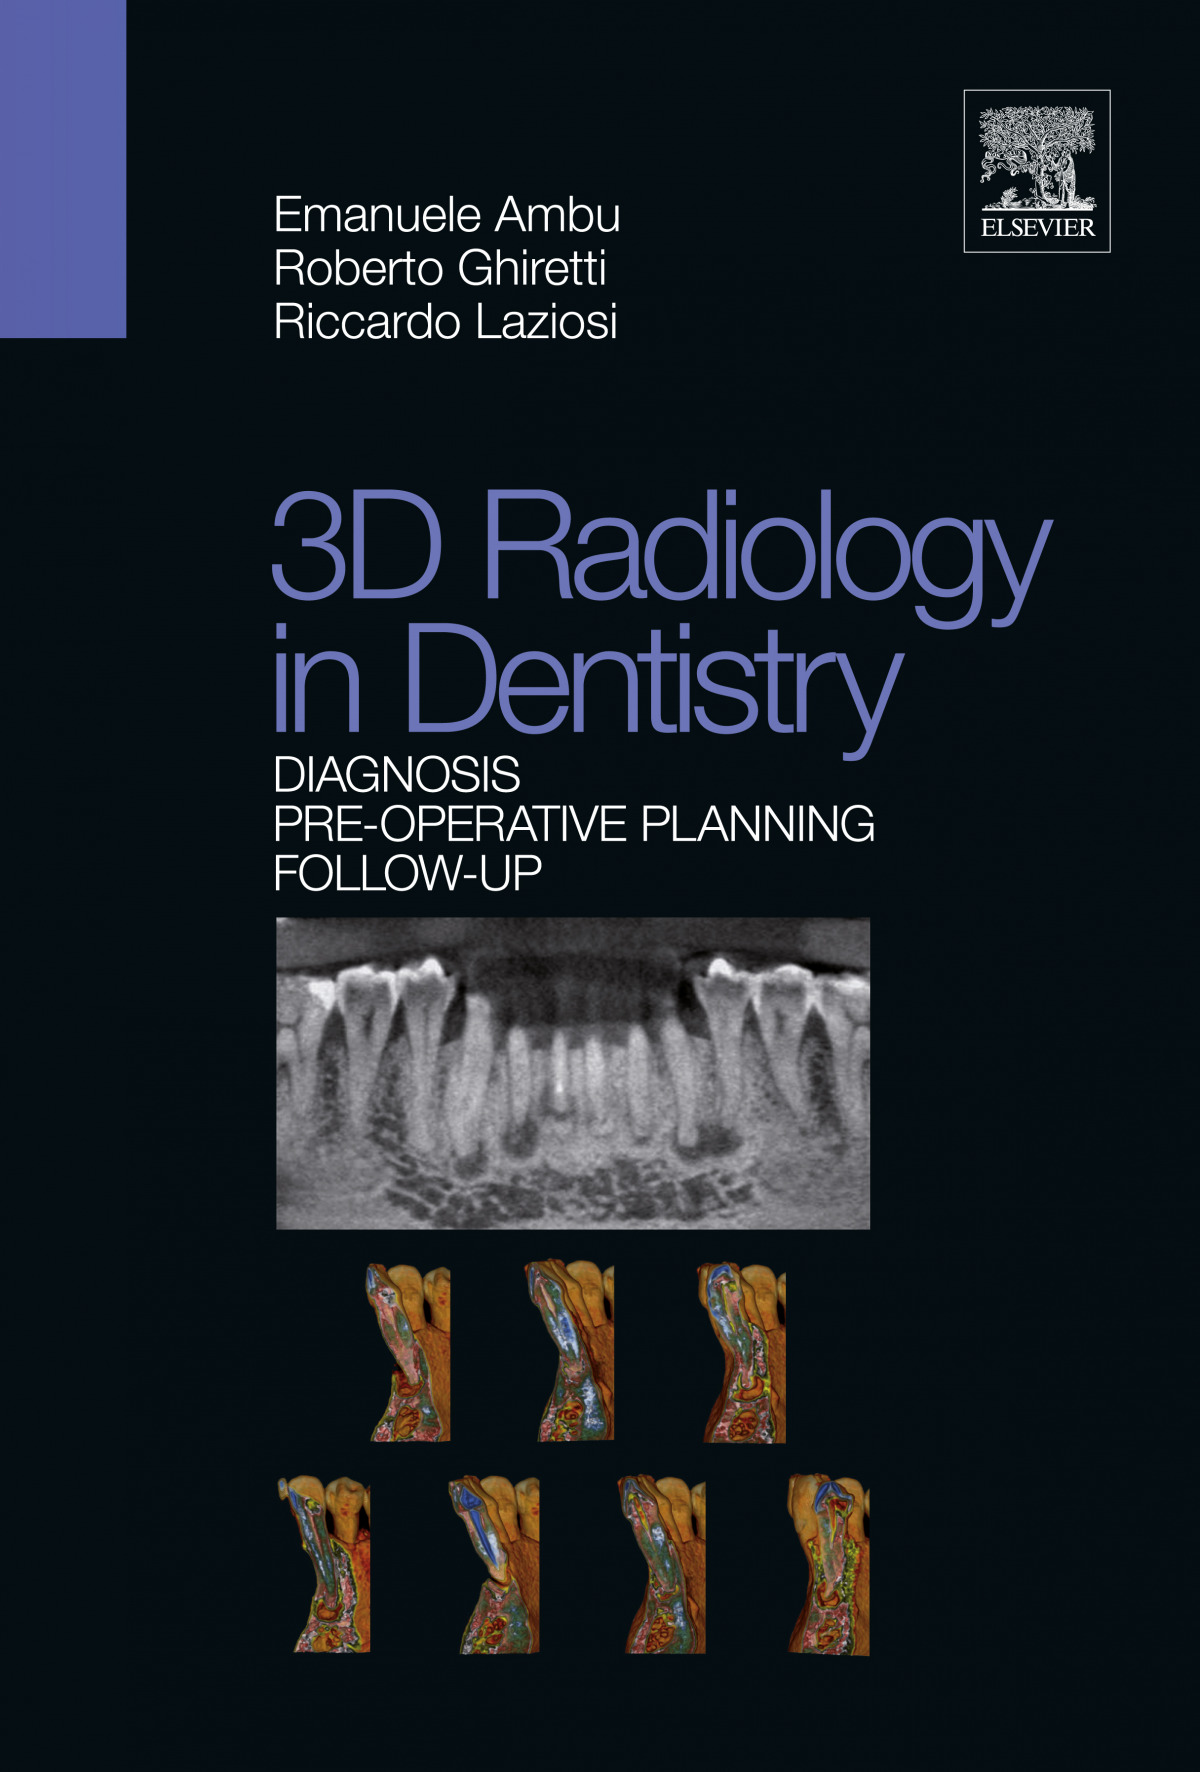 3D RADIOLOGY IN DENTISTRY DIAGNOSIS PRE OPERATIVE PLANNING